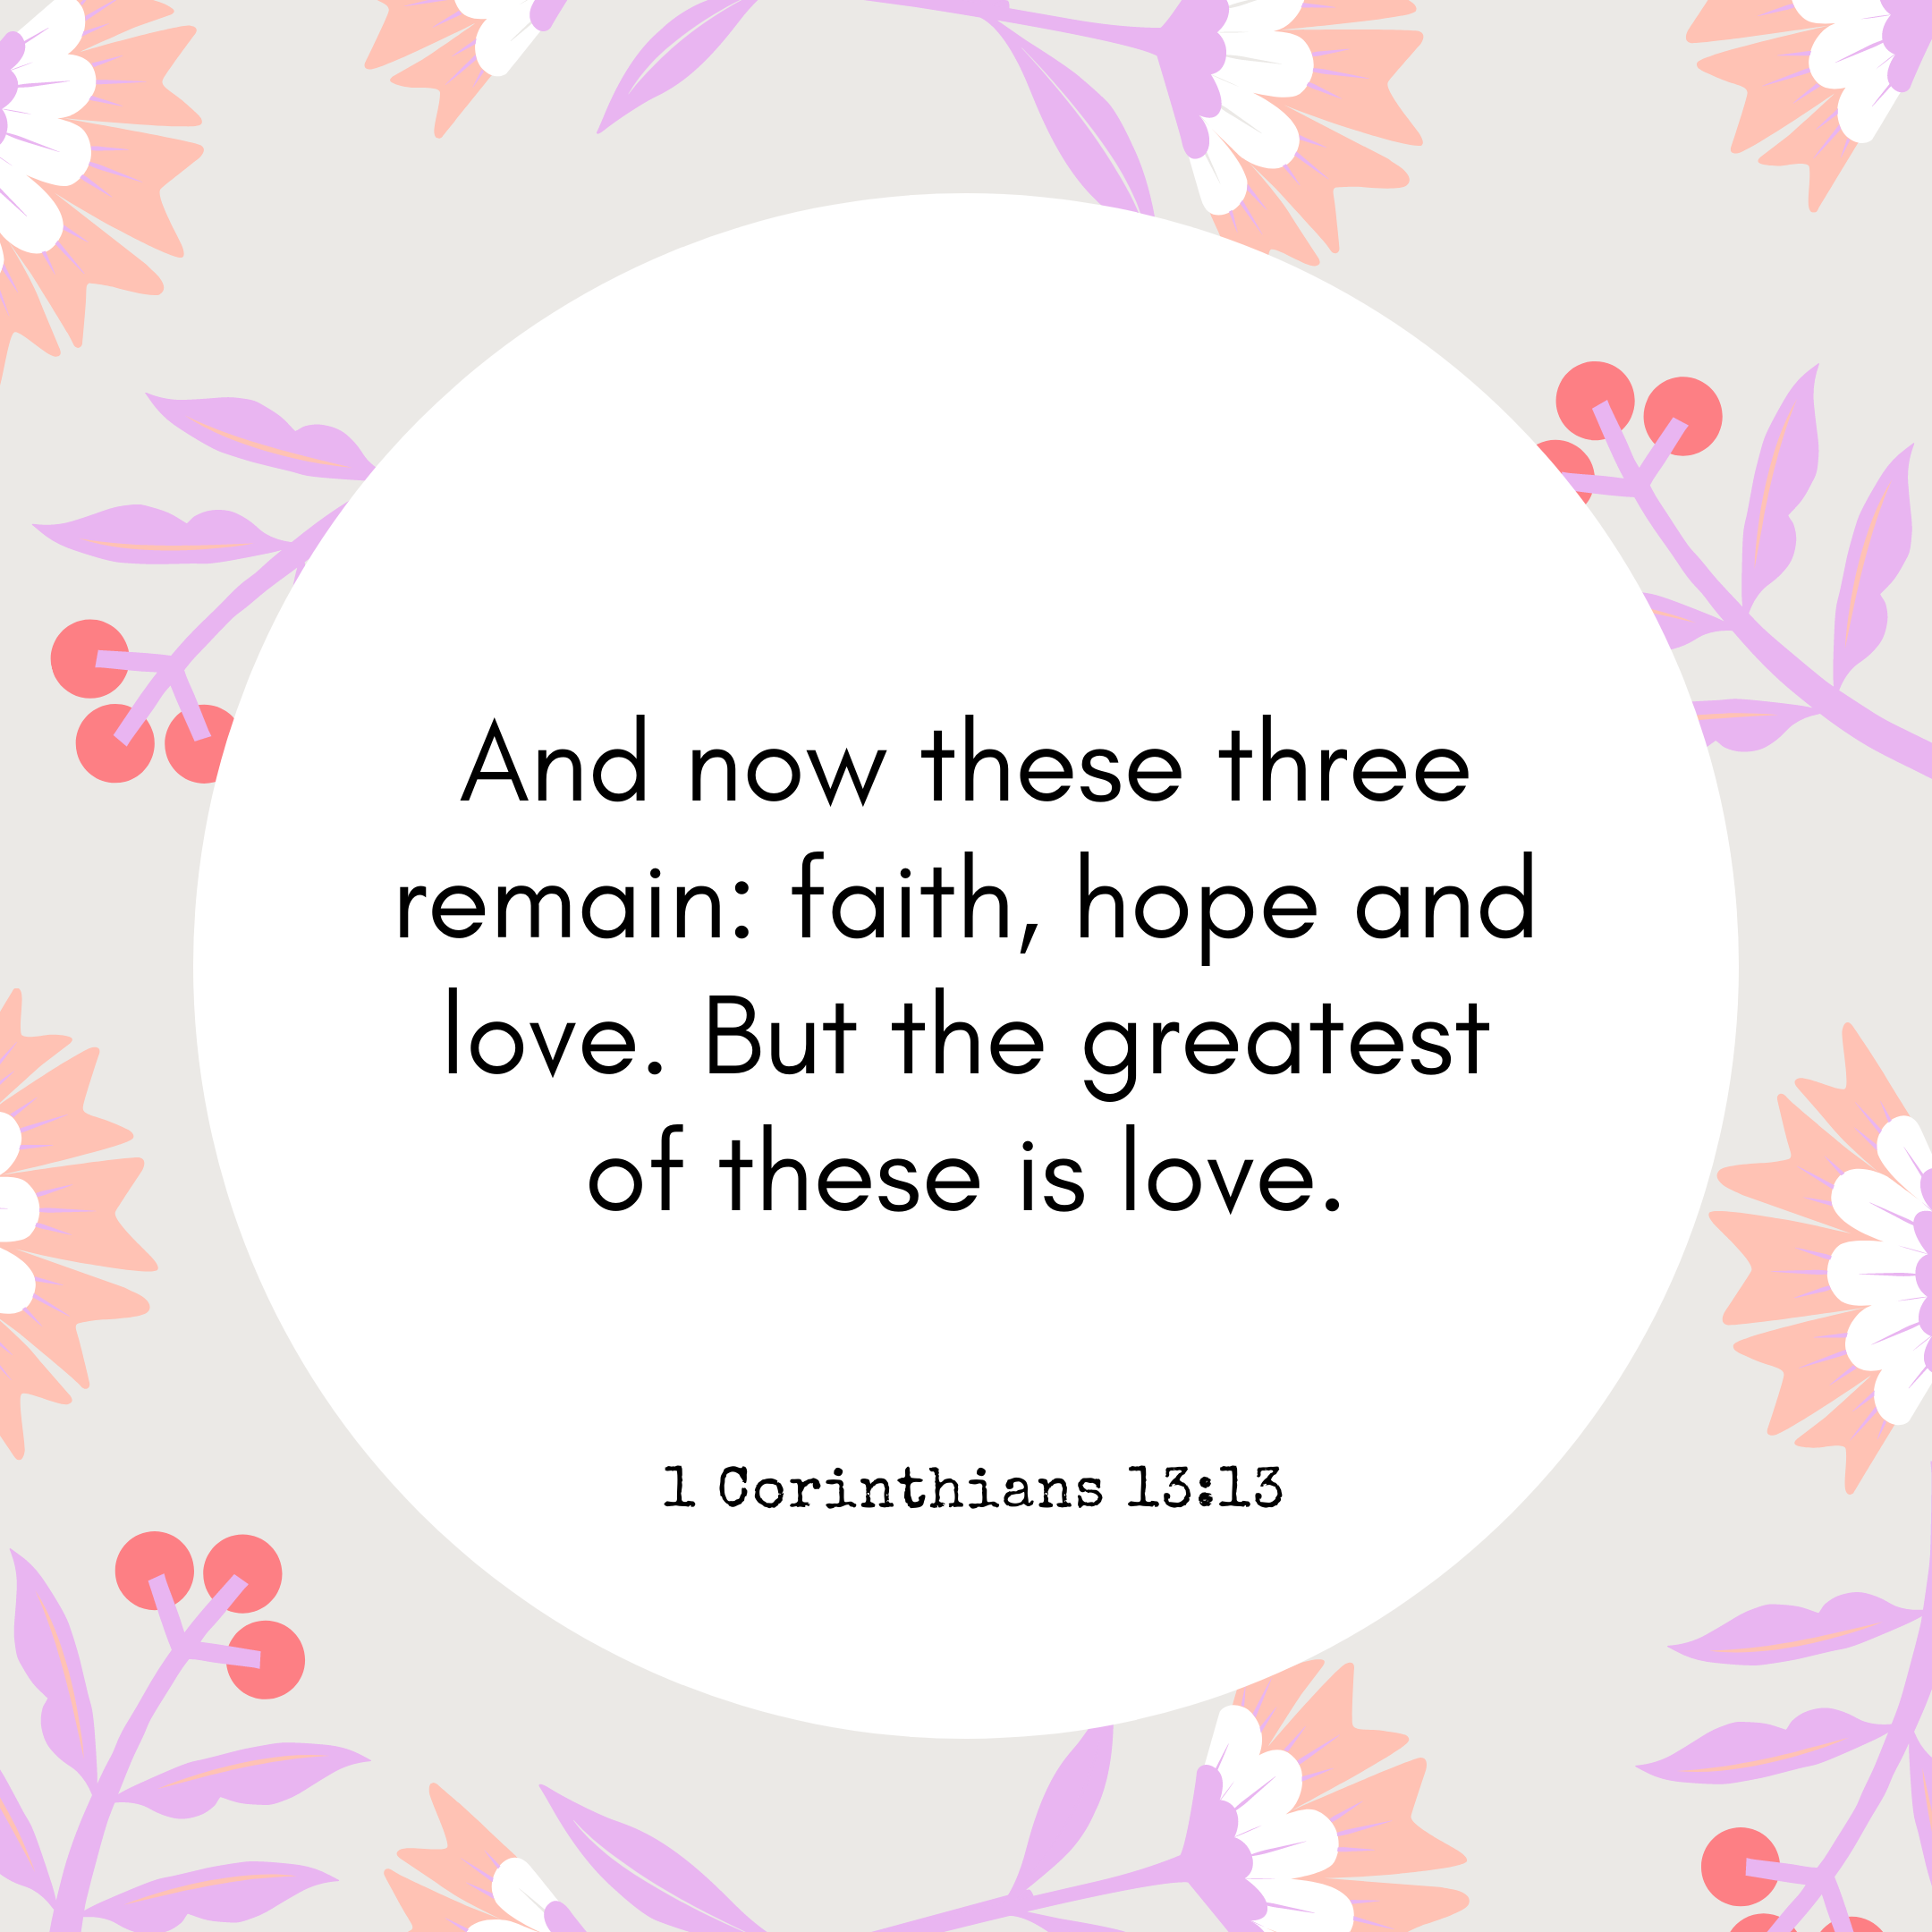 1 Corinthians 13:13 And now these three remain: faith, hope and love. But the greatest of these is love.